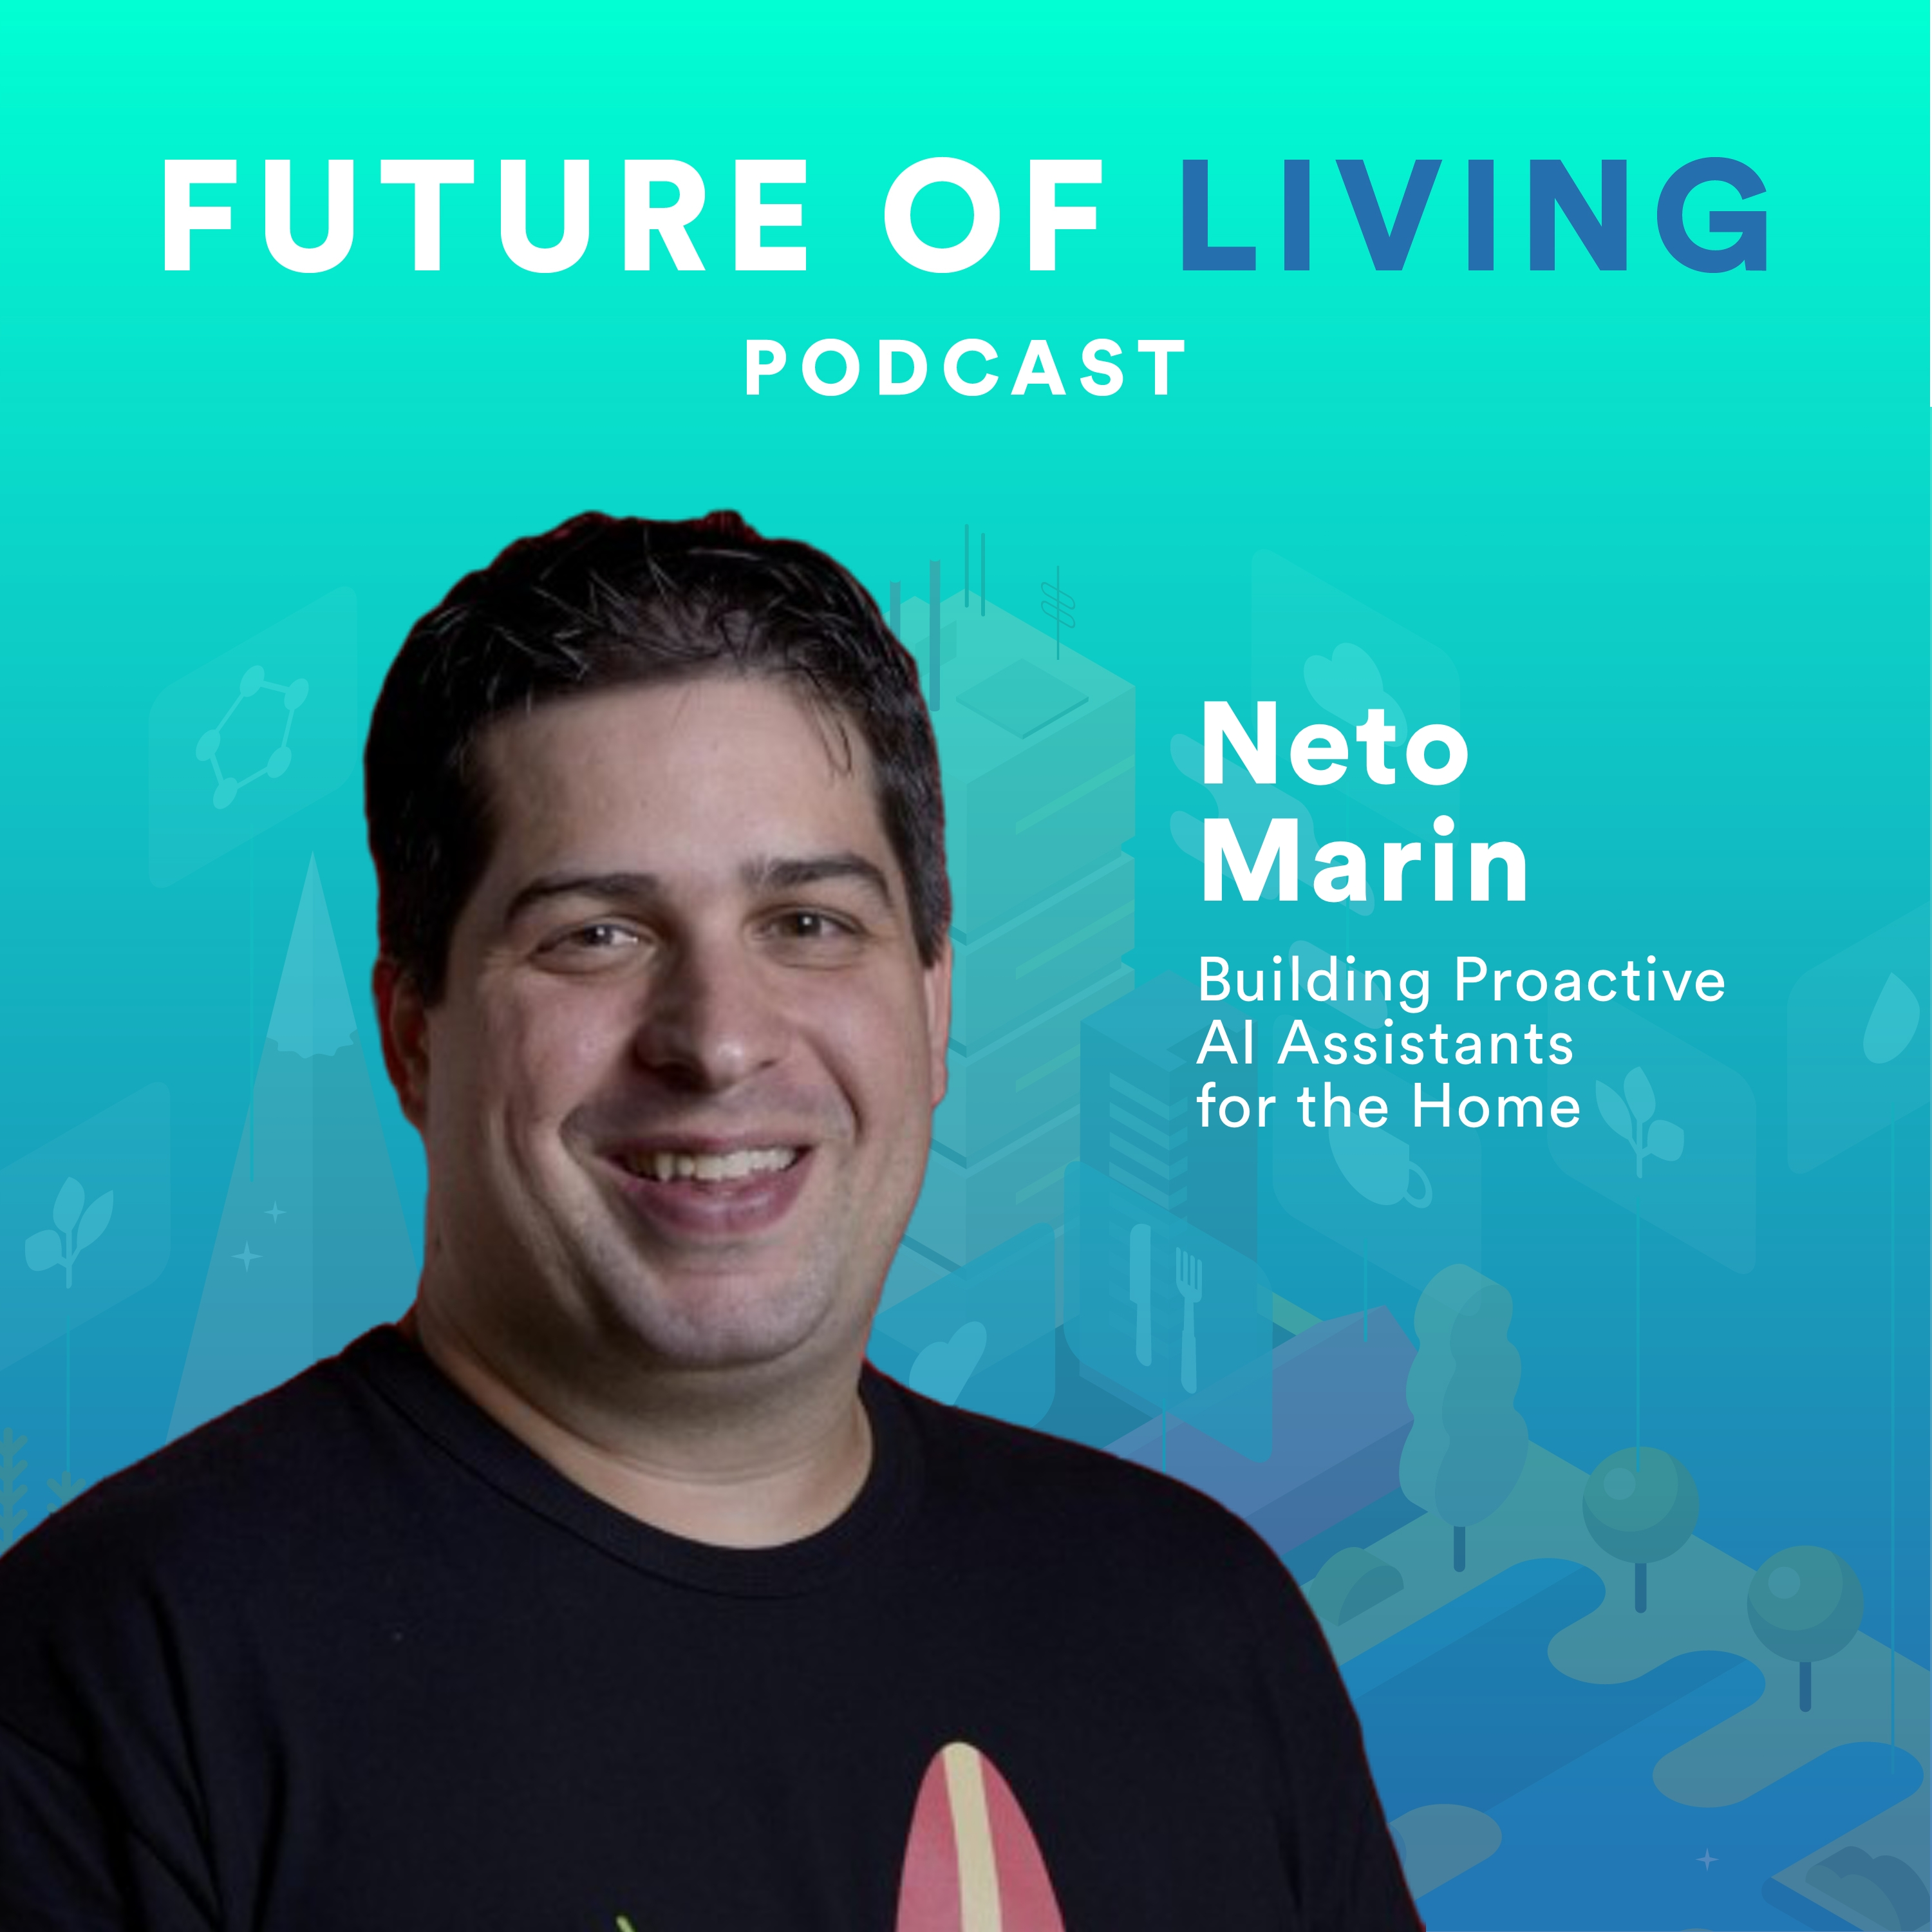 Neto Marin – Building Proactive AI Assistants for the Home